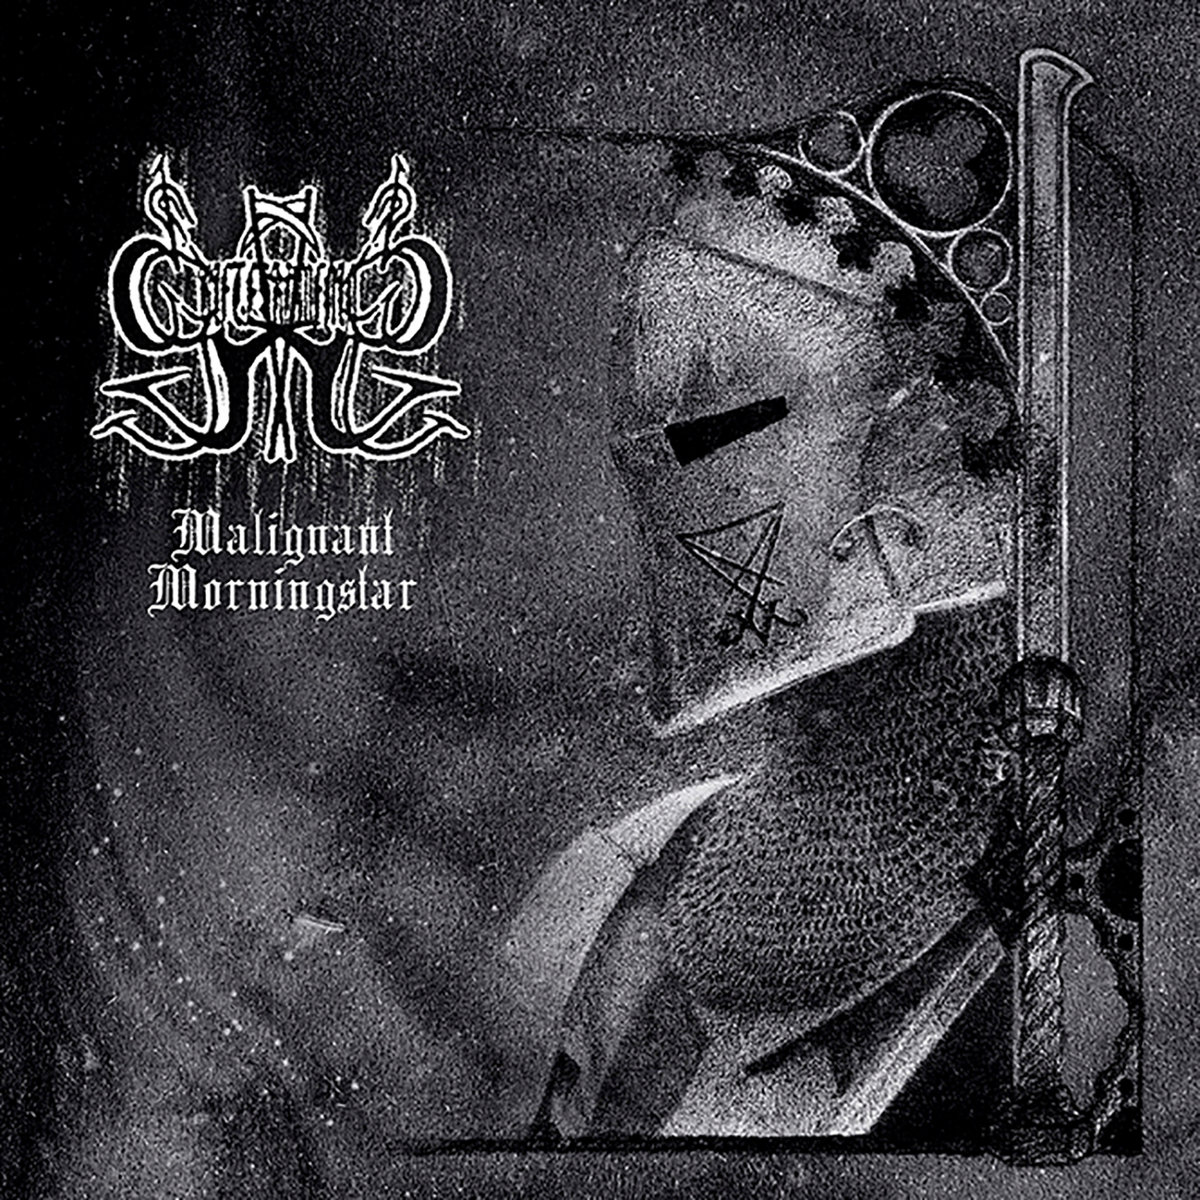 GRIFTESKYMFNING - Malignant Morningstar